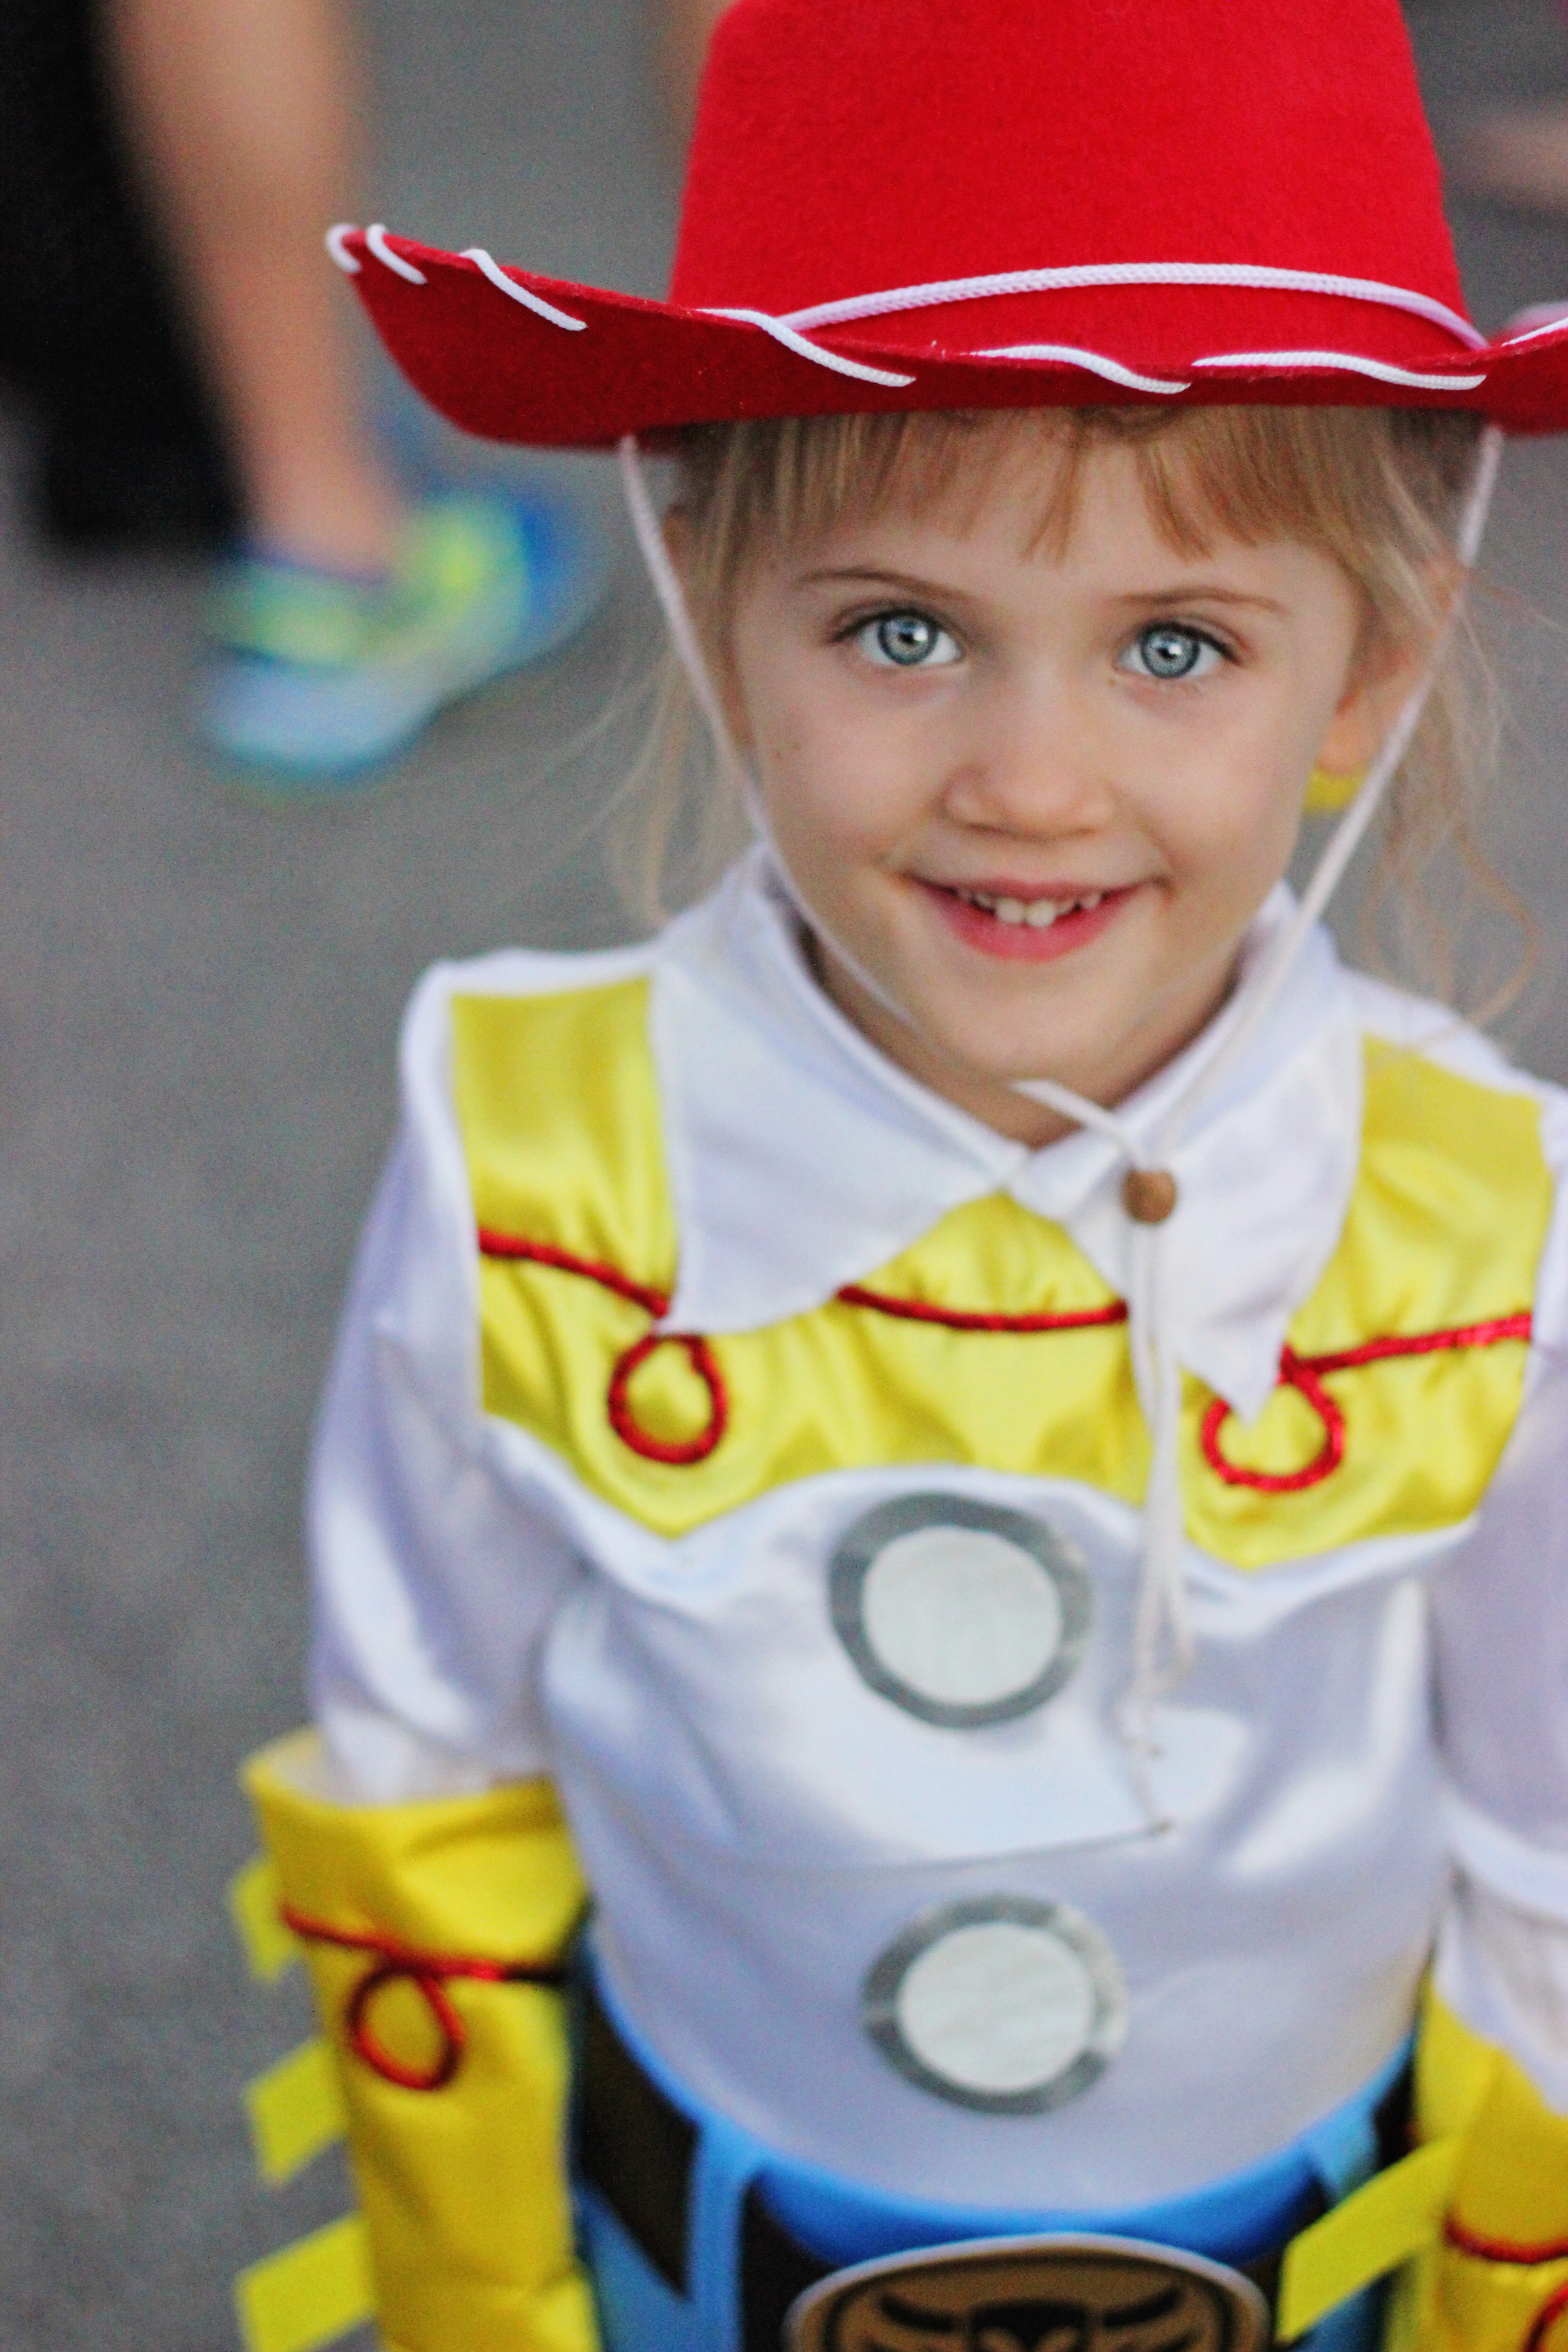 She got loads of attention in her Jessie costume last Friday night and would grin and glow each time someone said u201cHey Jessie!  sc 1 st  Sweet T Makes Three & Family Halloween Costume Idea: Toy Story Theme | Sweet T Makes Three